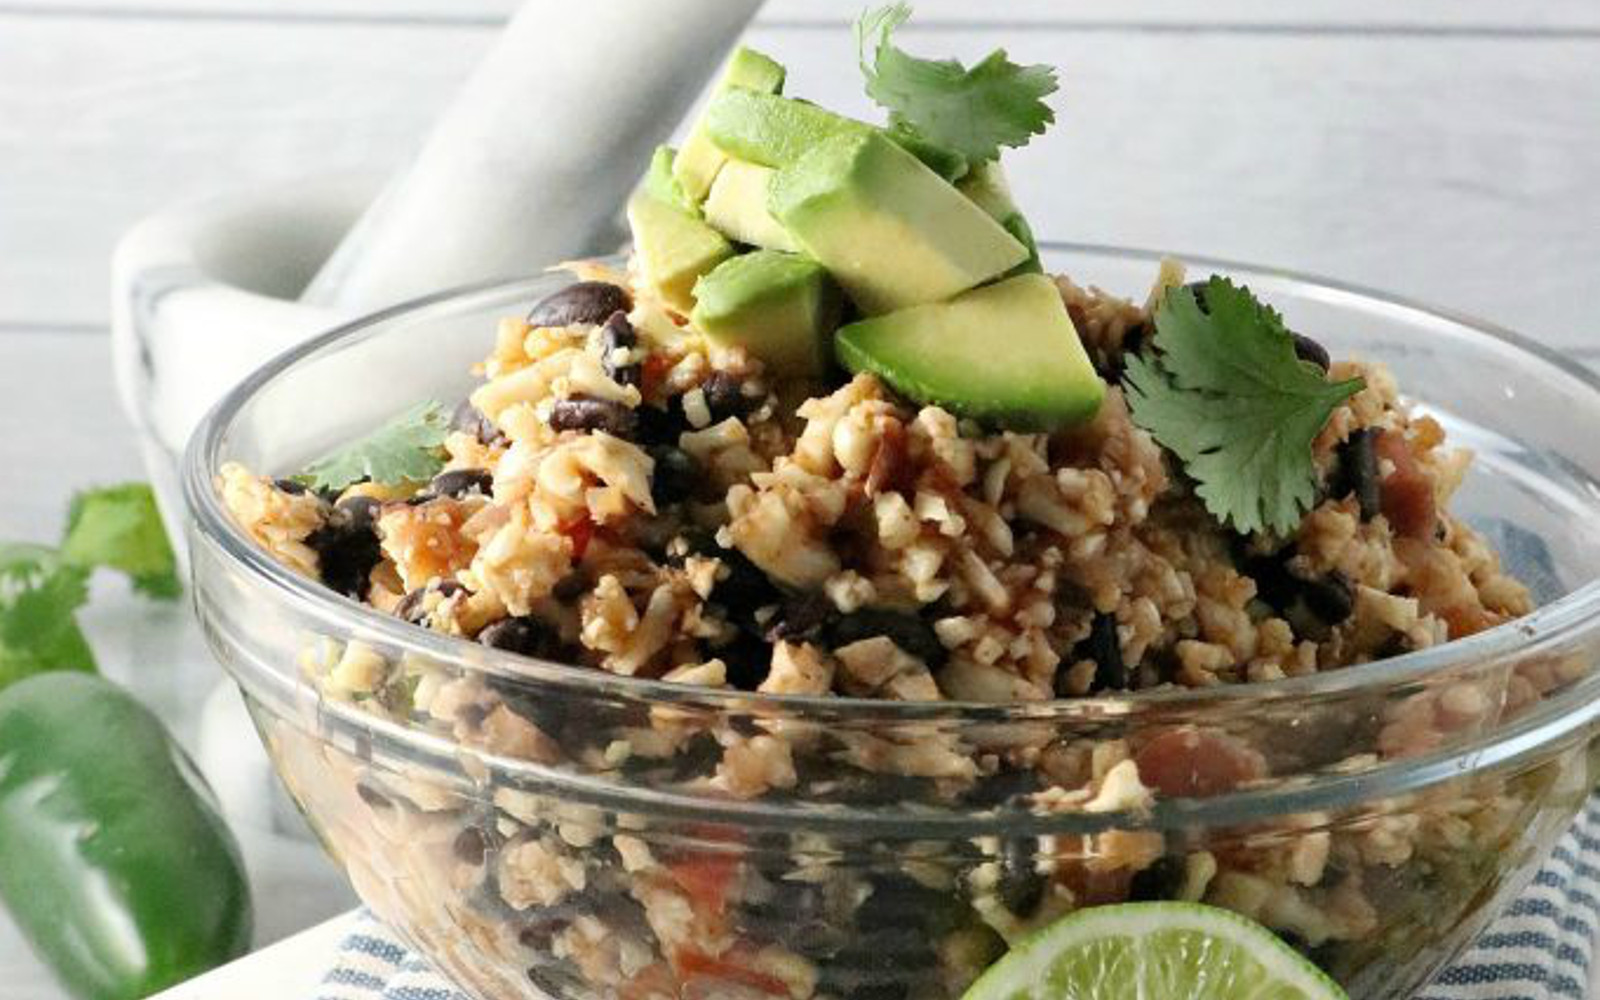 Vegan gluten-Free Spanish Cauliflower Rice with avocado